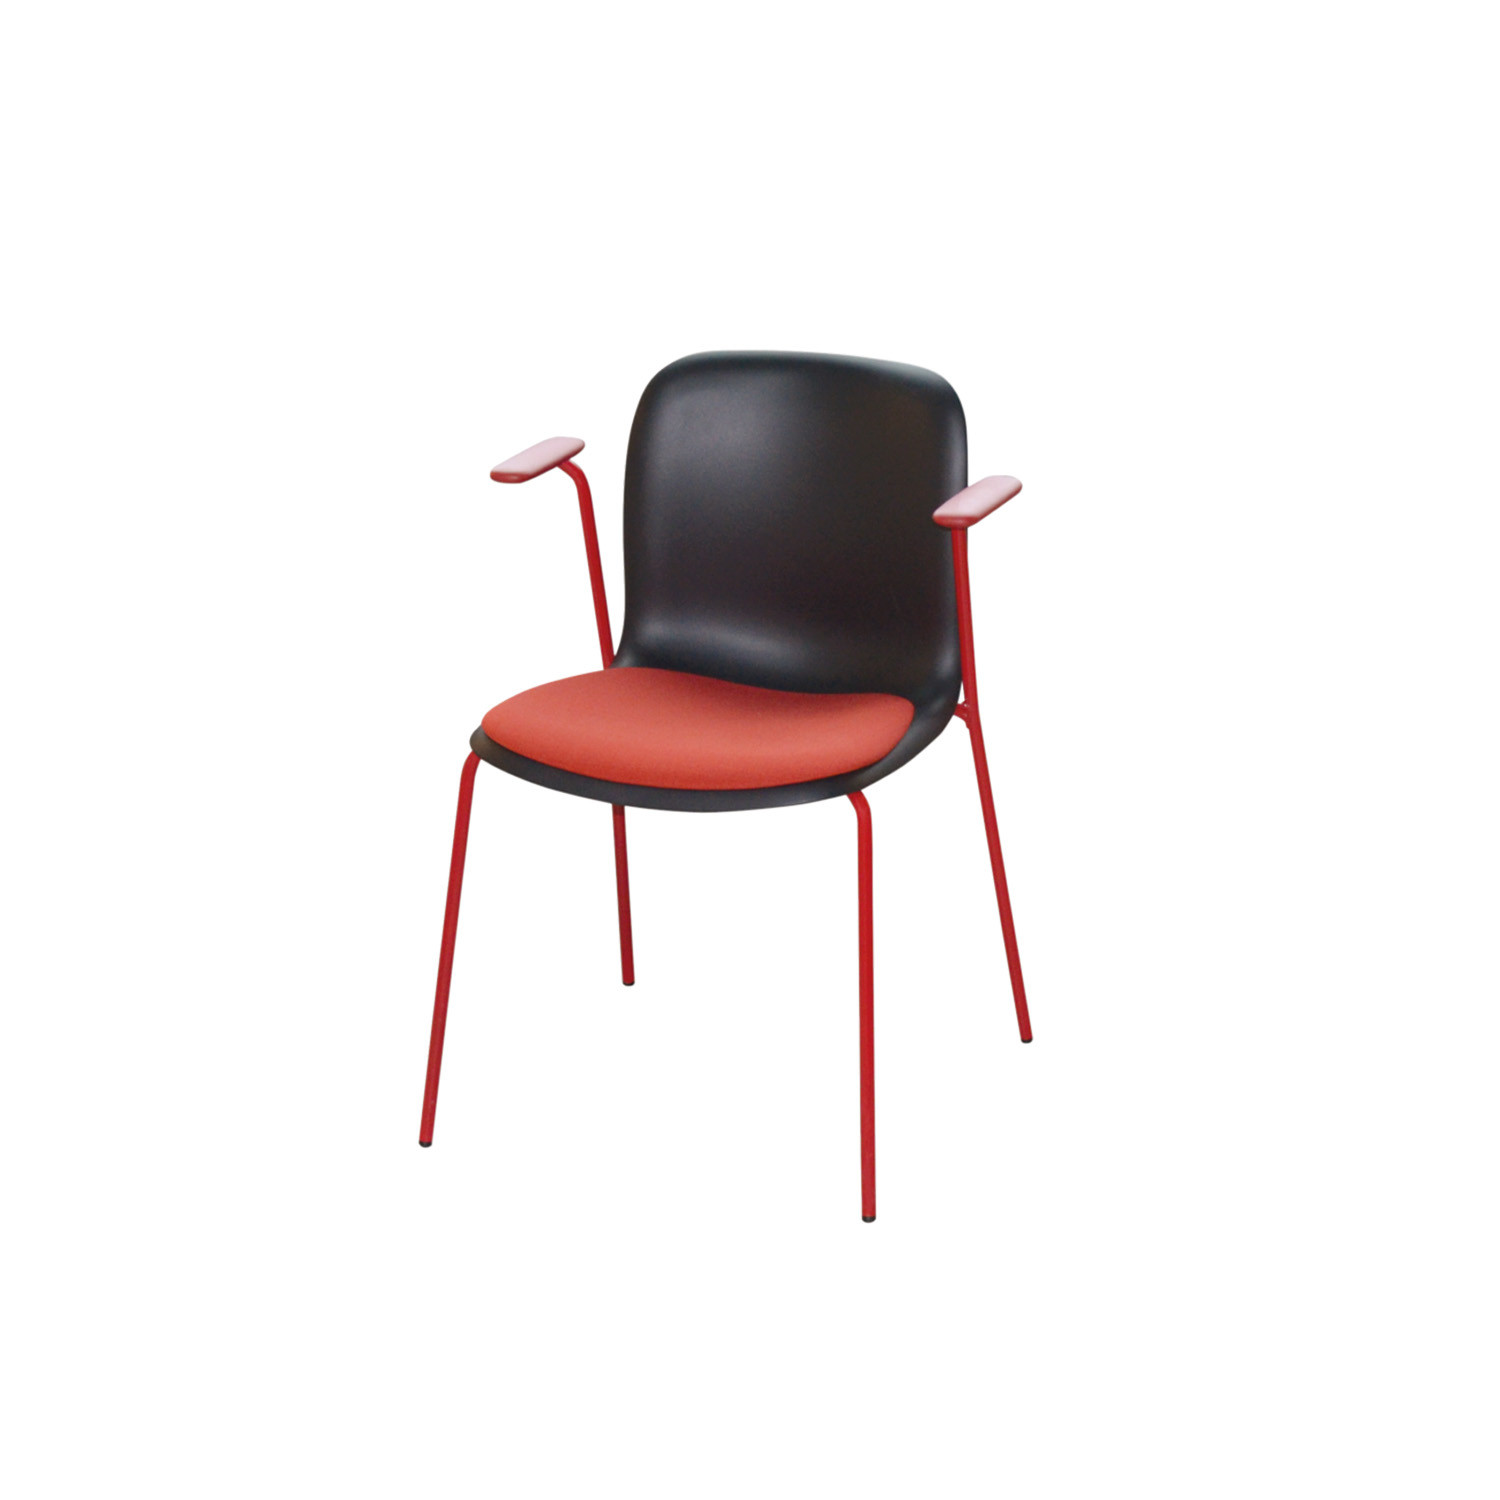 SixE Armchair with upholstered seat pad